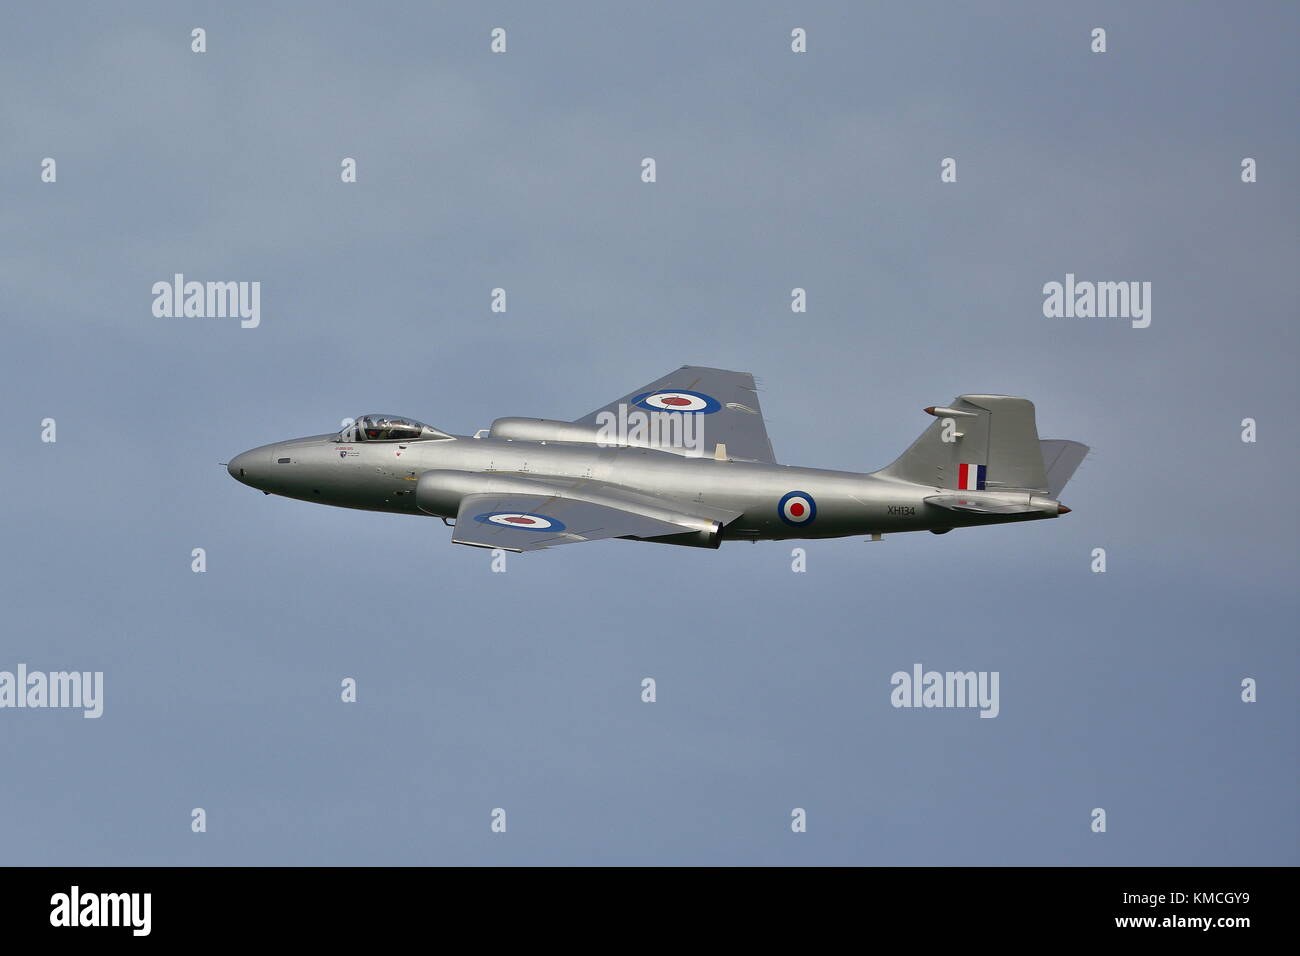 English Electric Canberra PR9 XH134 at the Abingdon Air Show 2014, UK Stock Photo